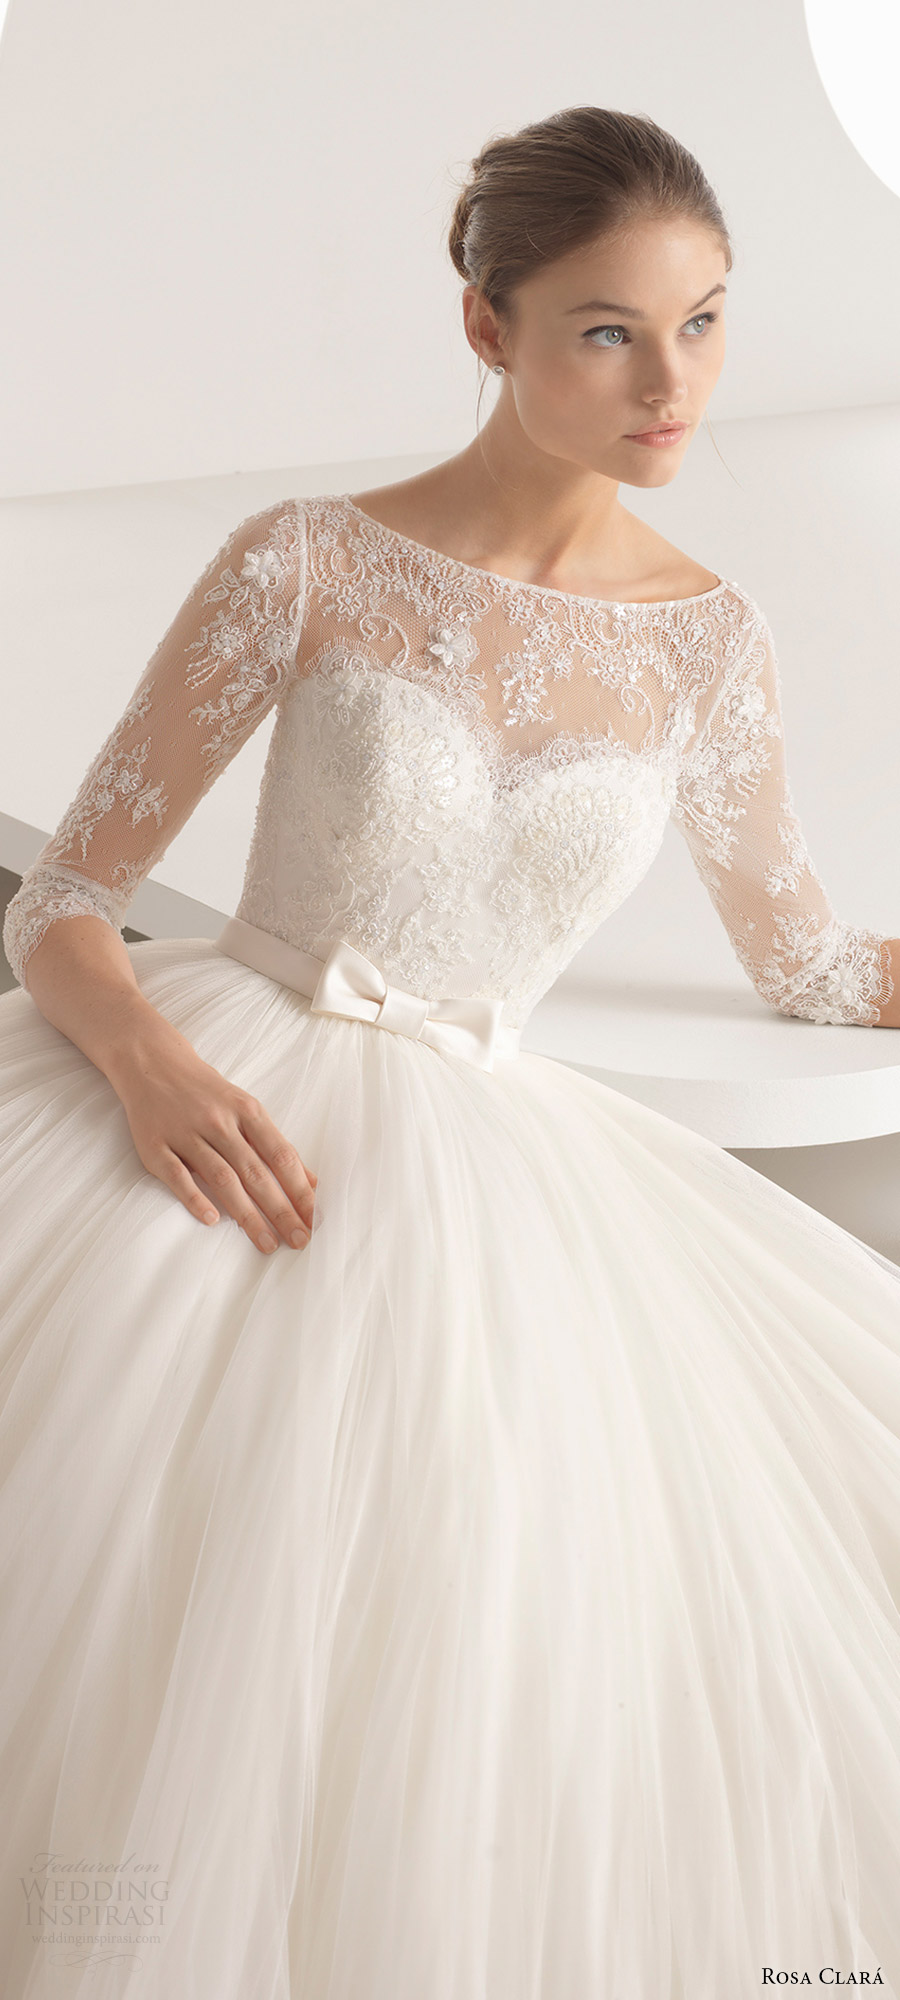 rosa clara 2018 bridal trends 3 quarter illusion sleeves bateau neck lace bodice ball gown wedding dress (alina) zv romantic princess